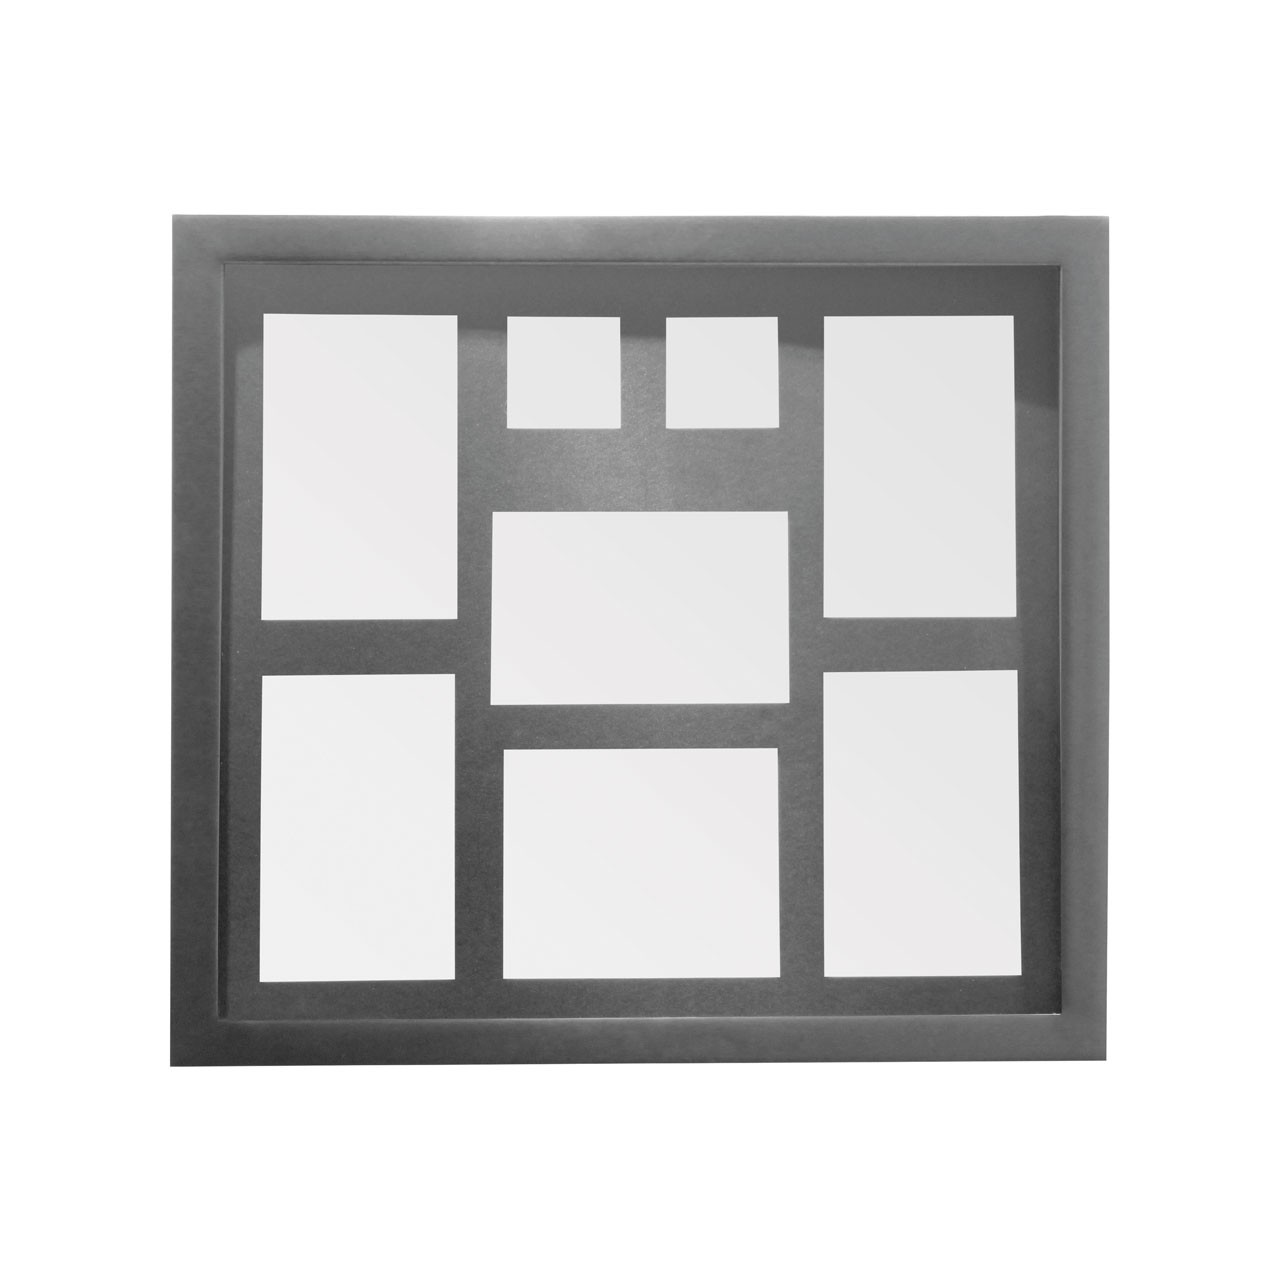 Prime Furnishing 8 Photos Multi Photo Frame - Silver